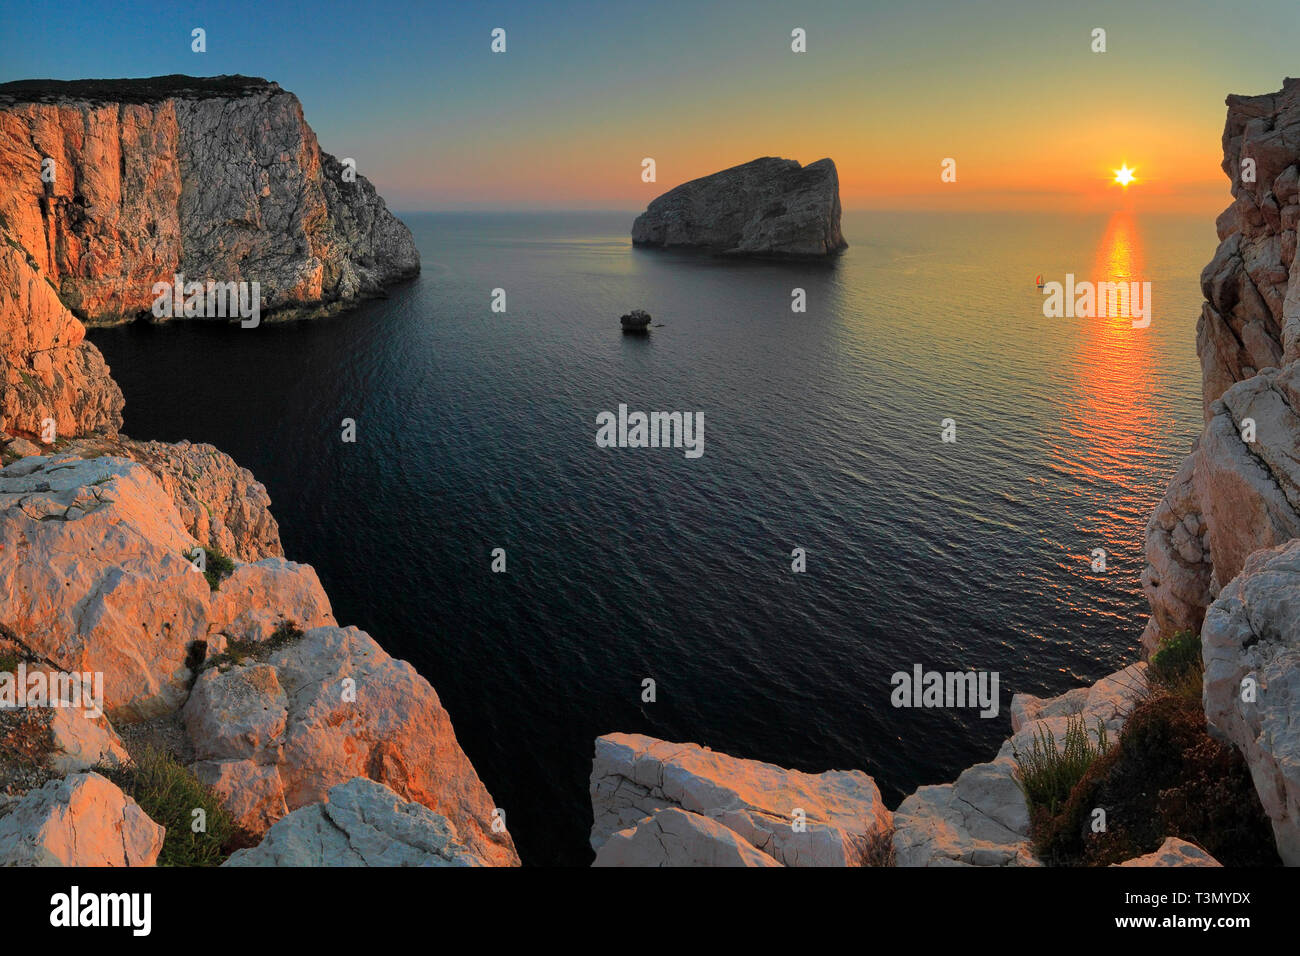 A view at sunset of the huge vertical walls of limestone of the cliffs of Capo Caccia, a wonderful promontory on the western coast of Sardinia in Ital - Stock Image